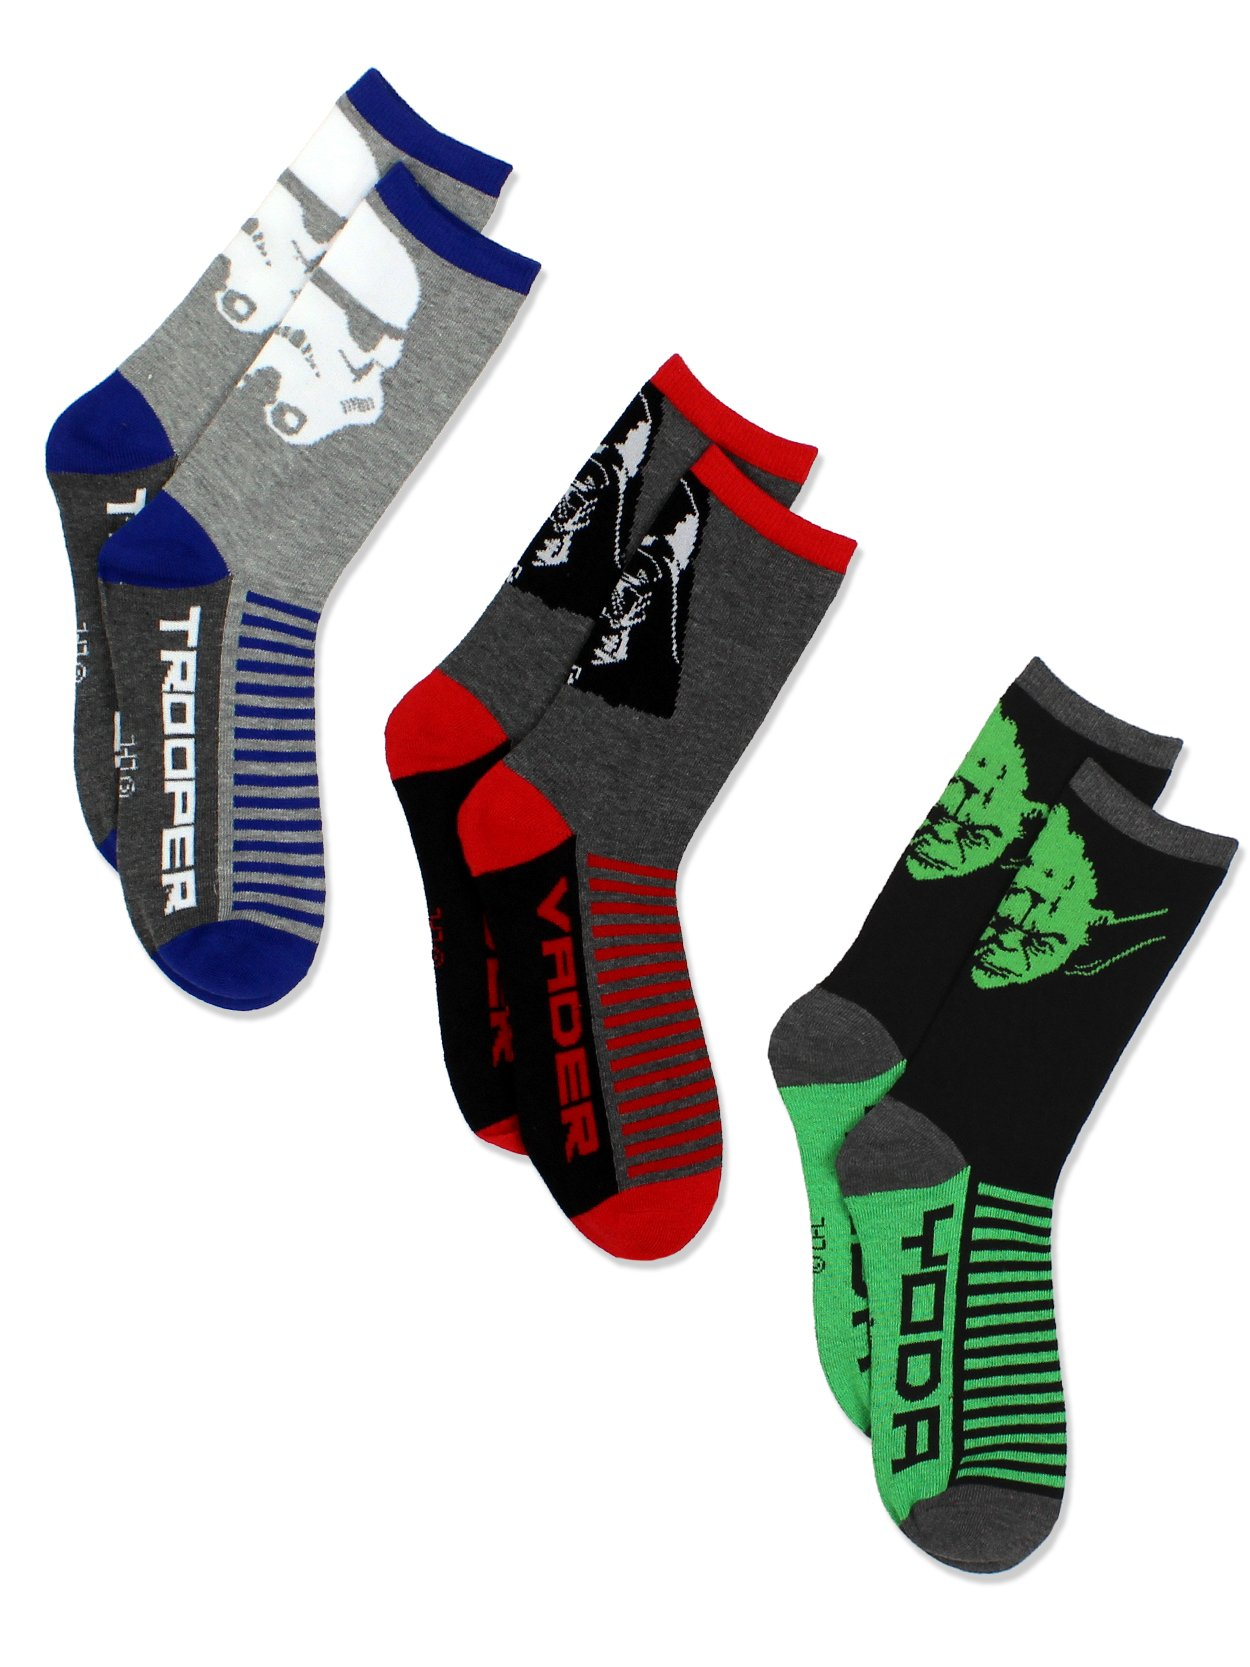 Star Wars Boys 3 pack Socks (9-11 Teen (Shoe: 4-10), Grey/Multi Crew)